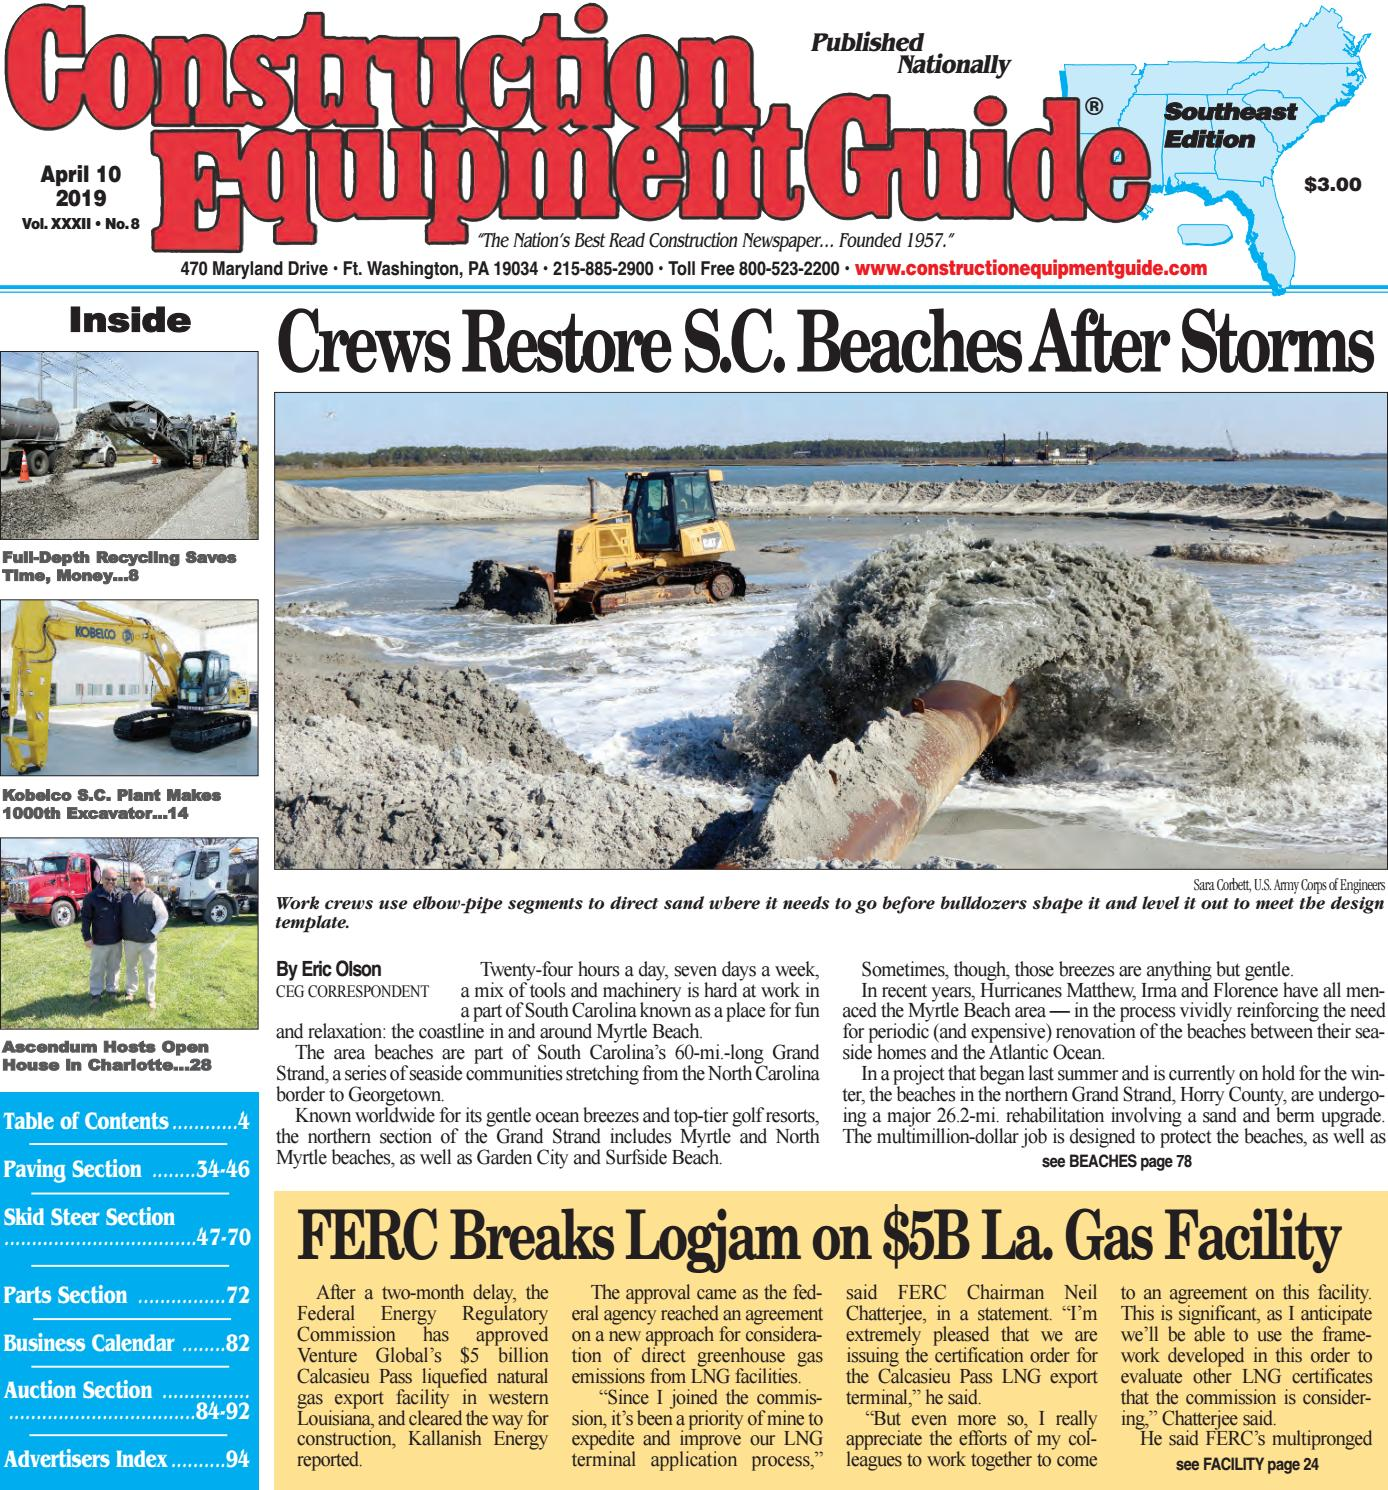 Southeast 8 April 10, 2019 by Construction Equipment Guide